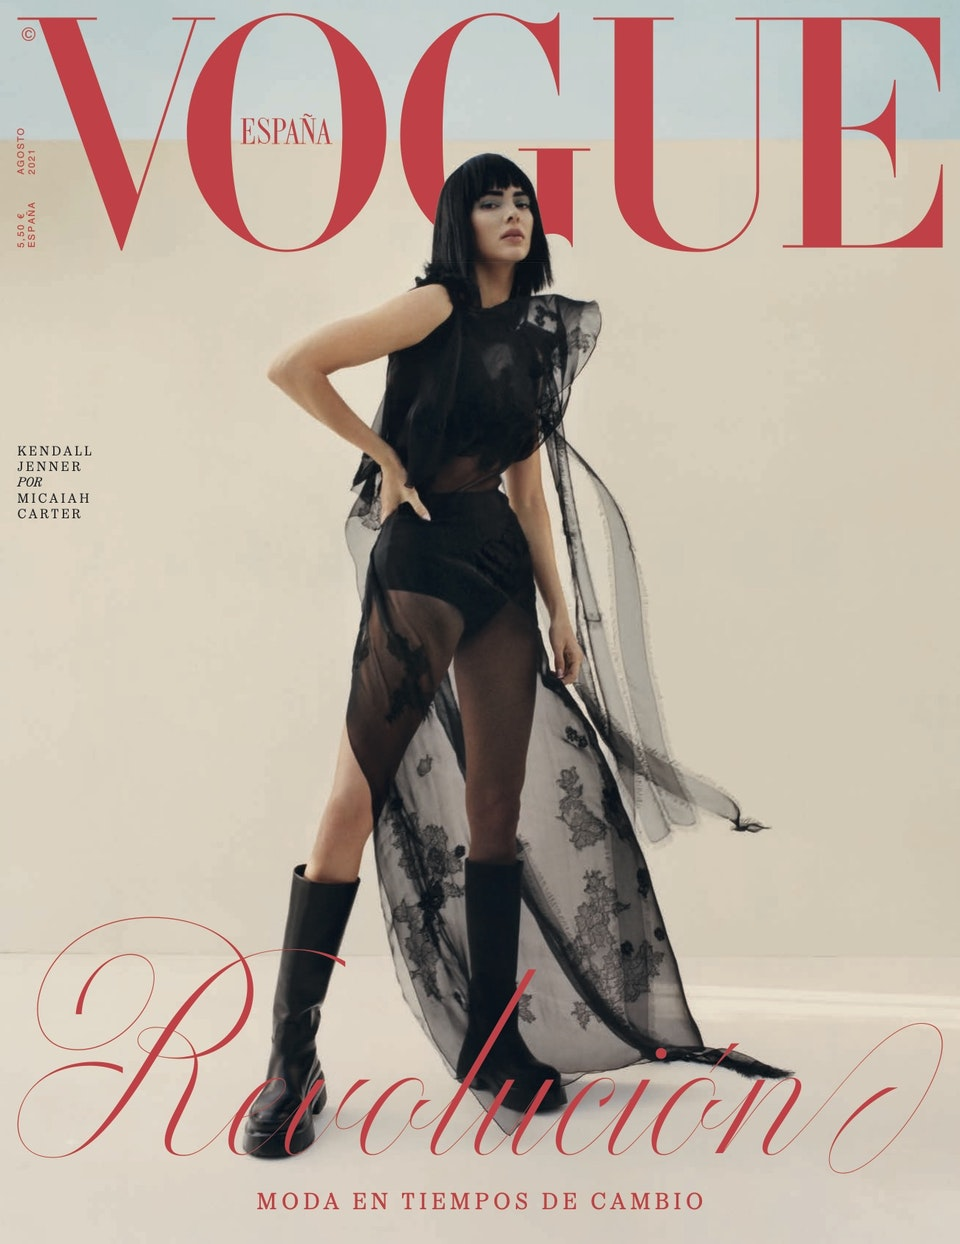 Vogue Spain August 2021 (dragged)